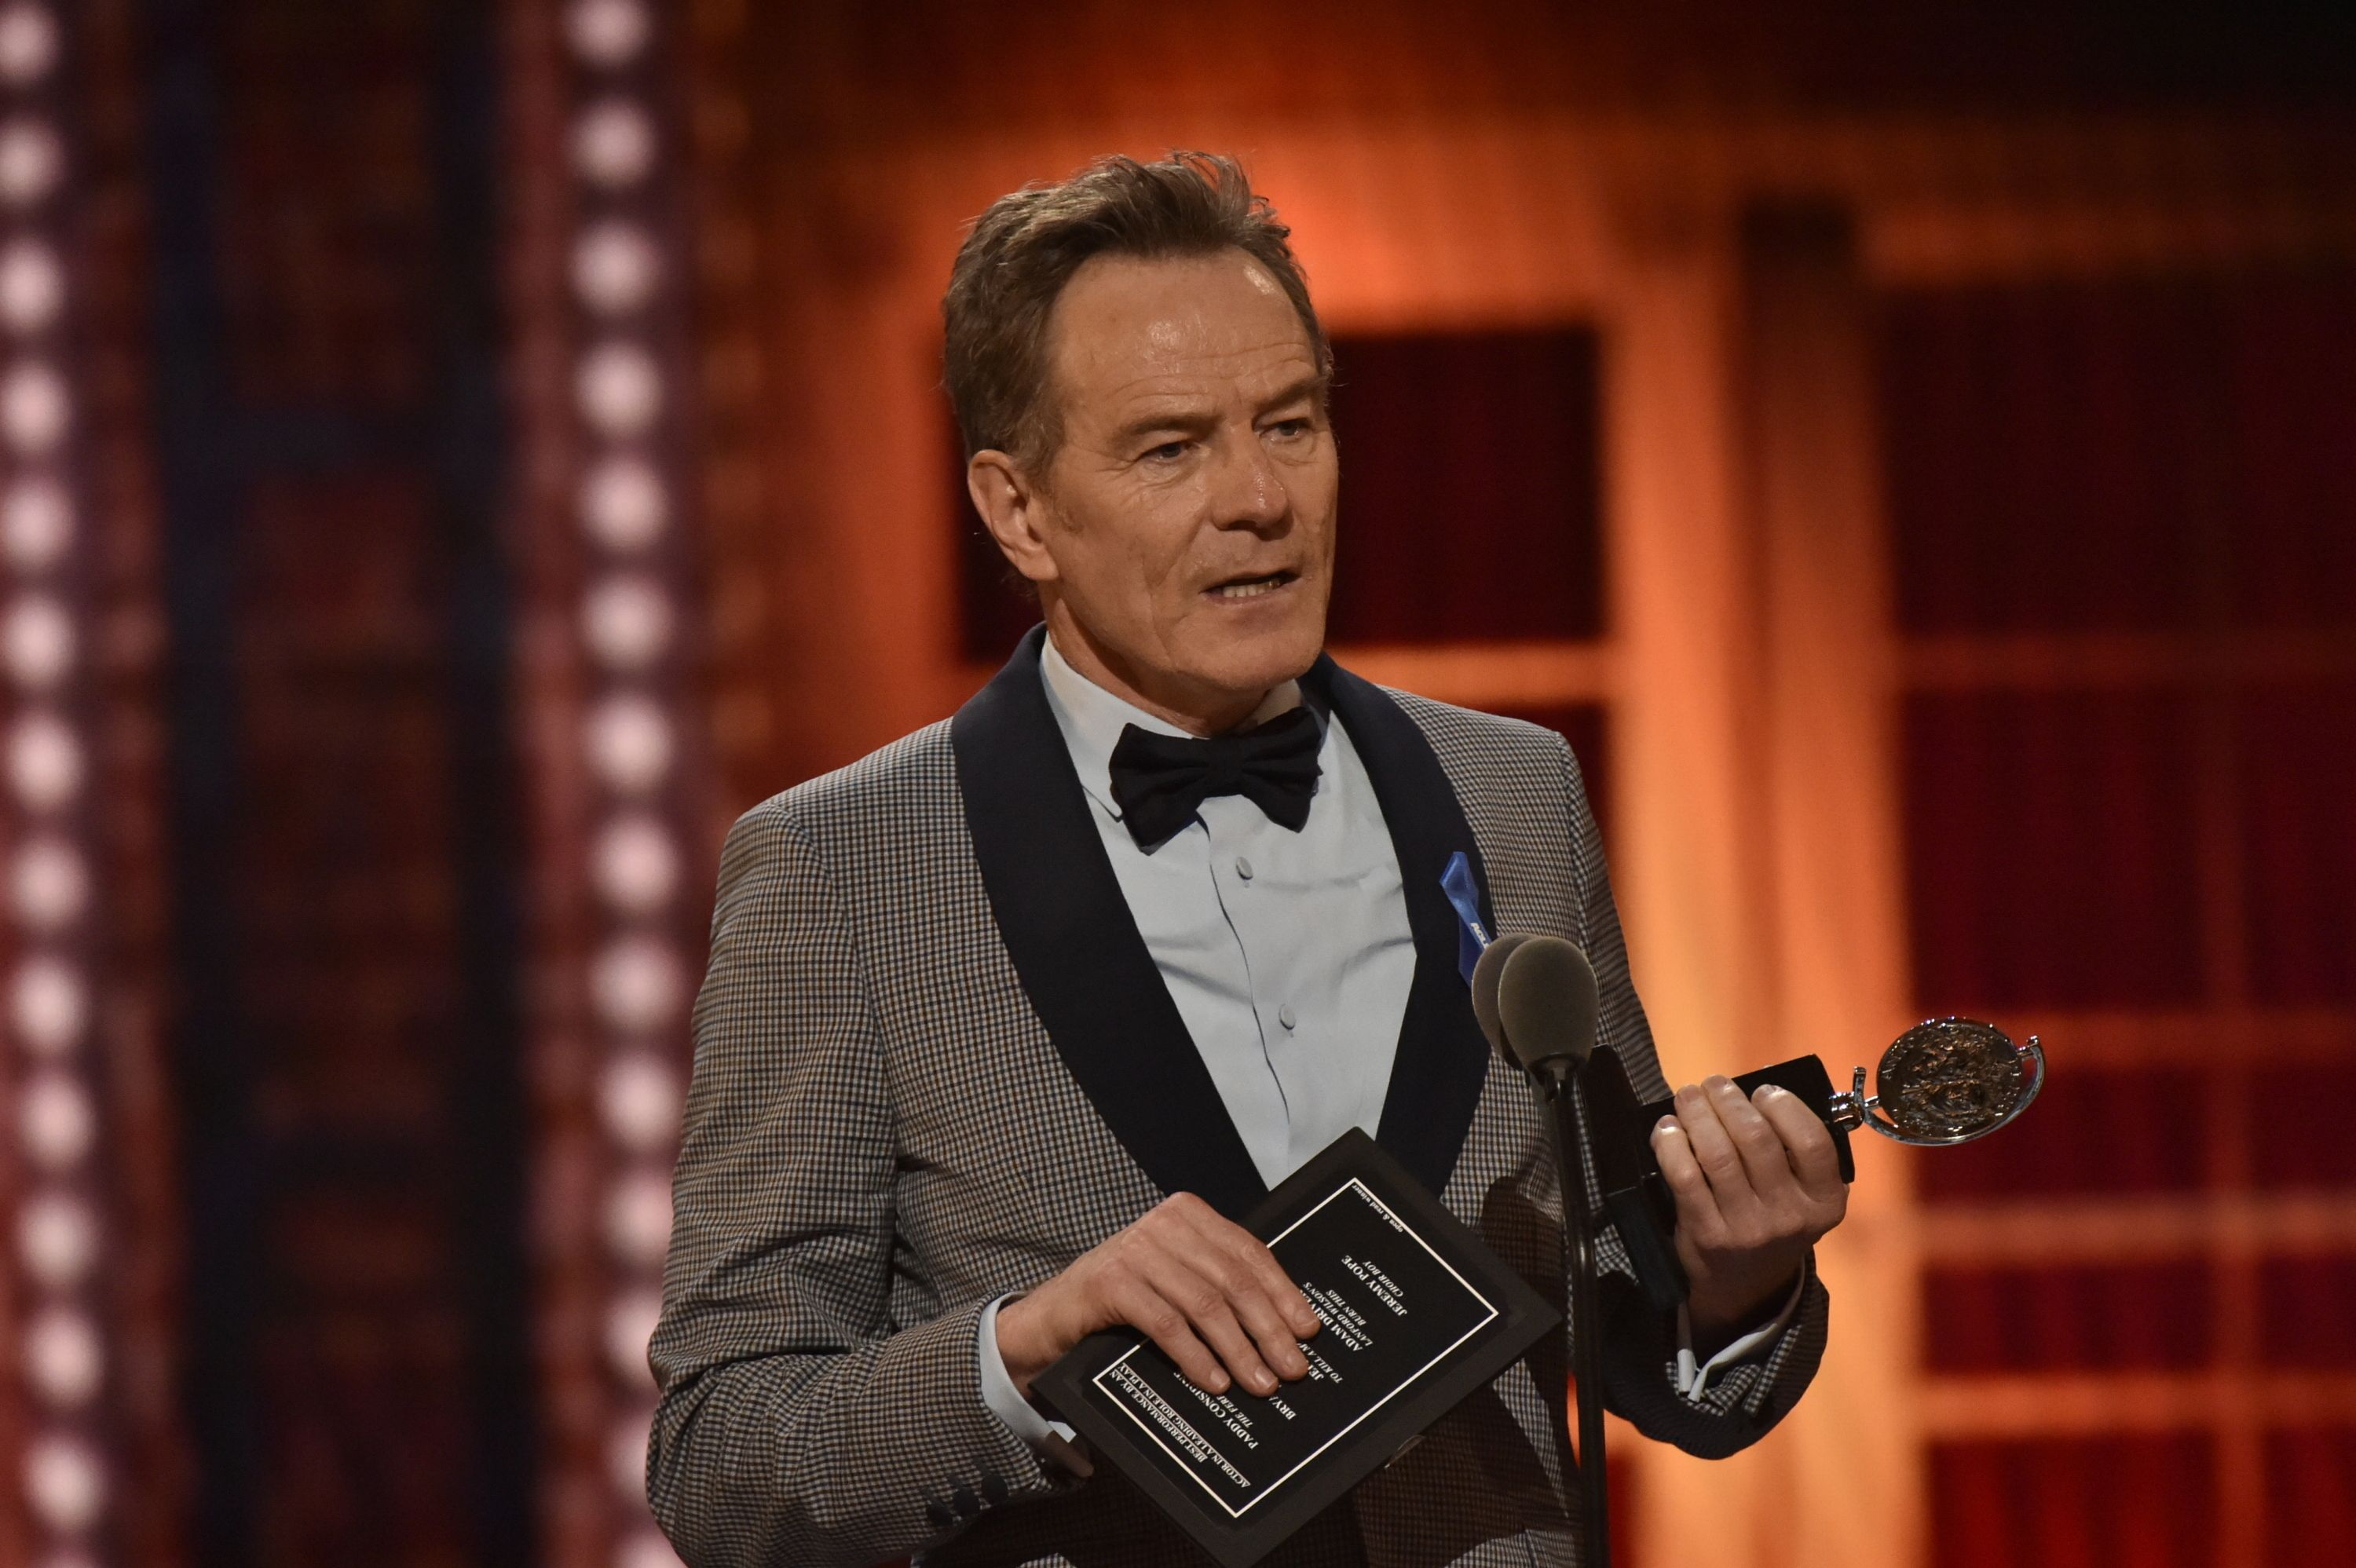 Bryan Cranston's Tonys Speech Calling Trump's 'Demagoguery' the 'Enemy of the People' Is Required Viewing